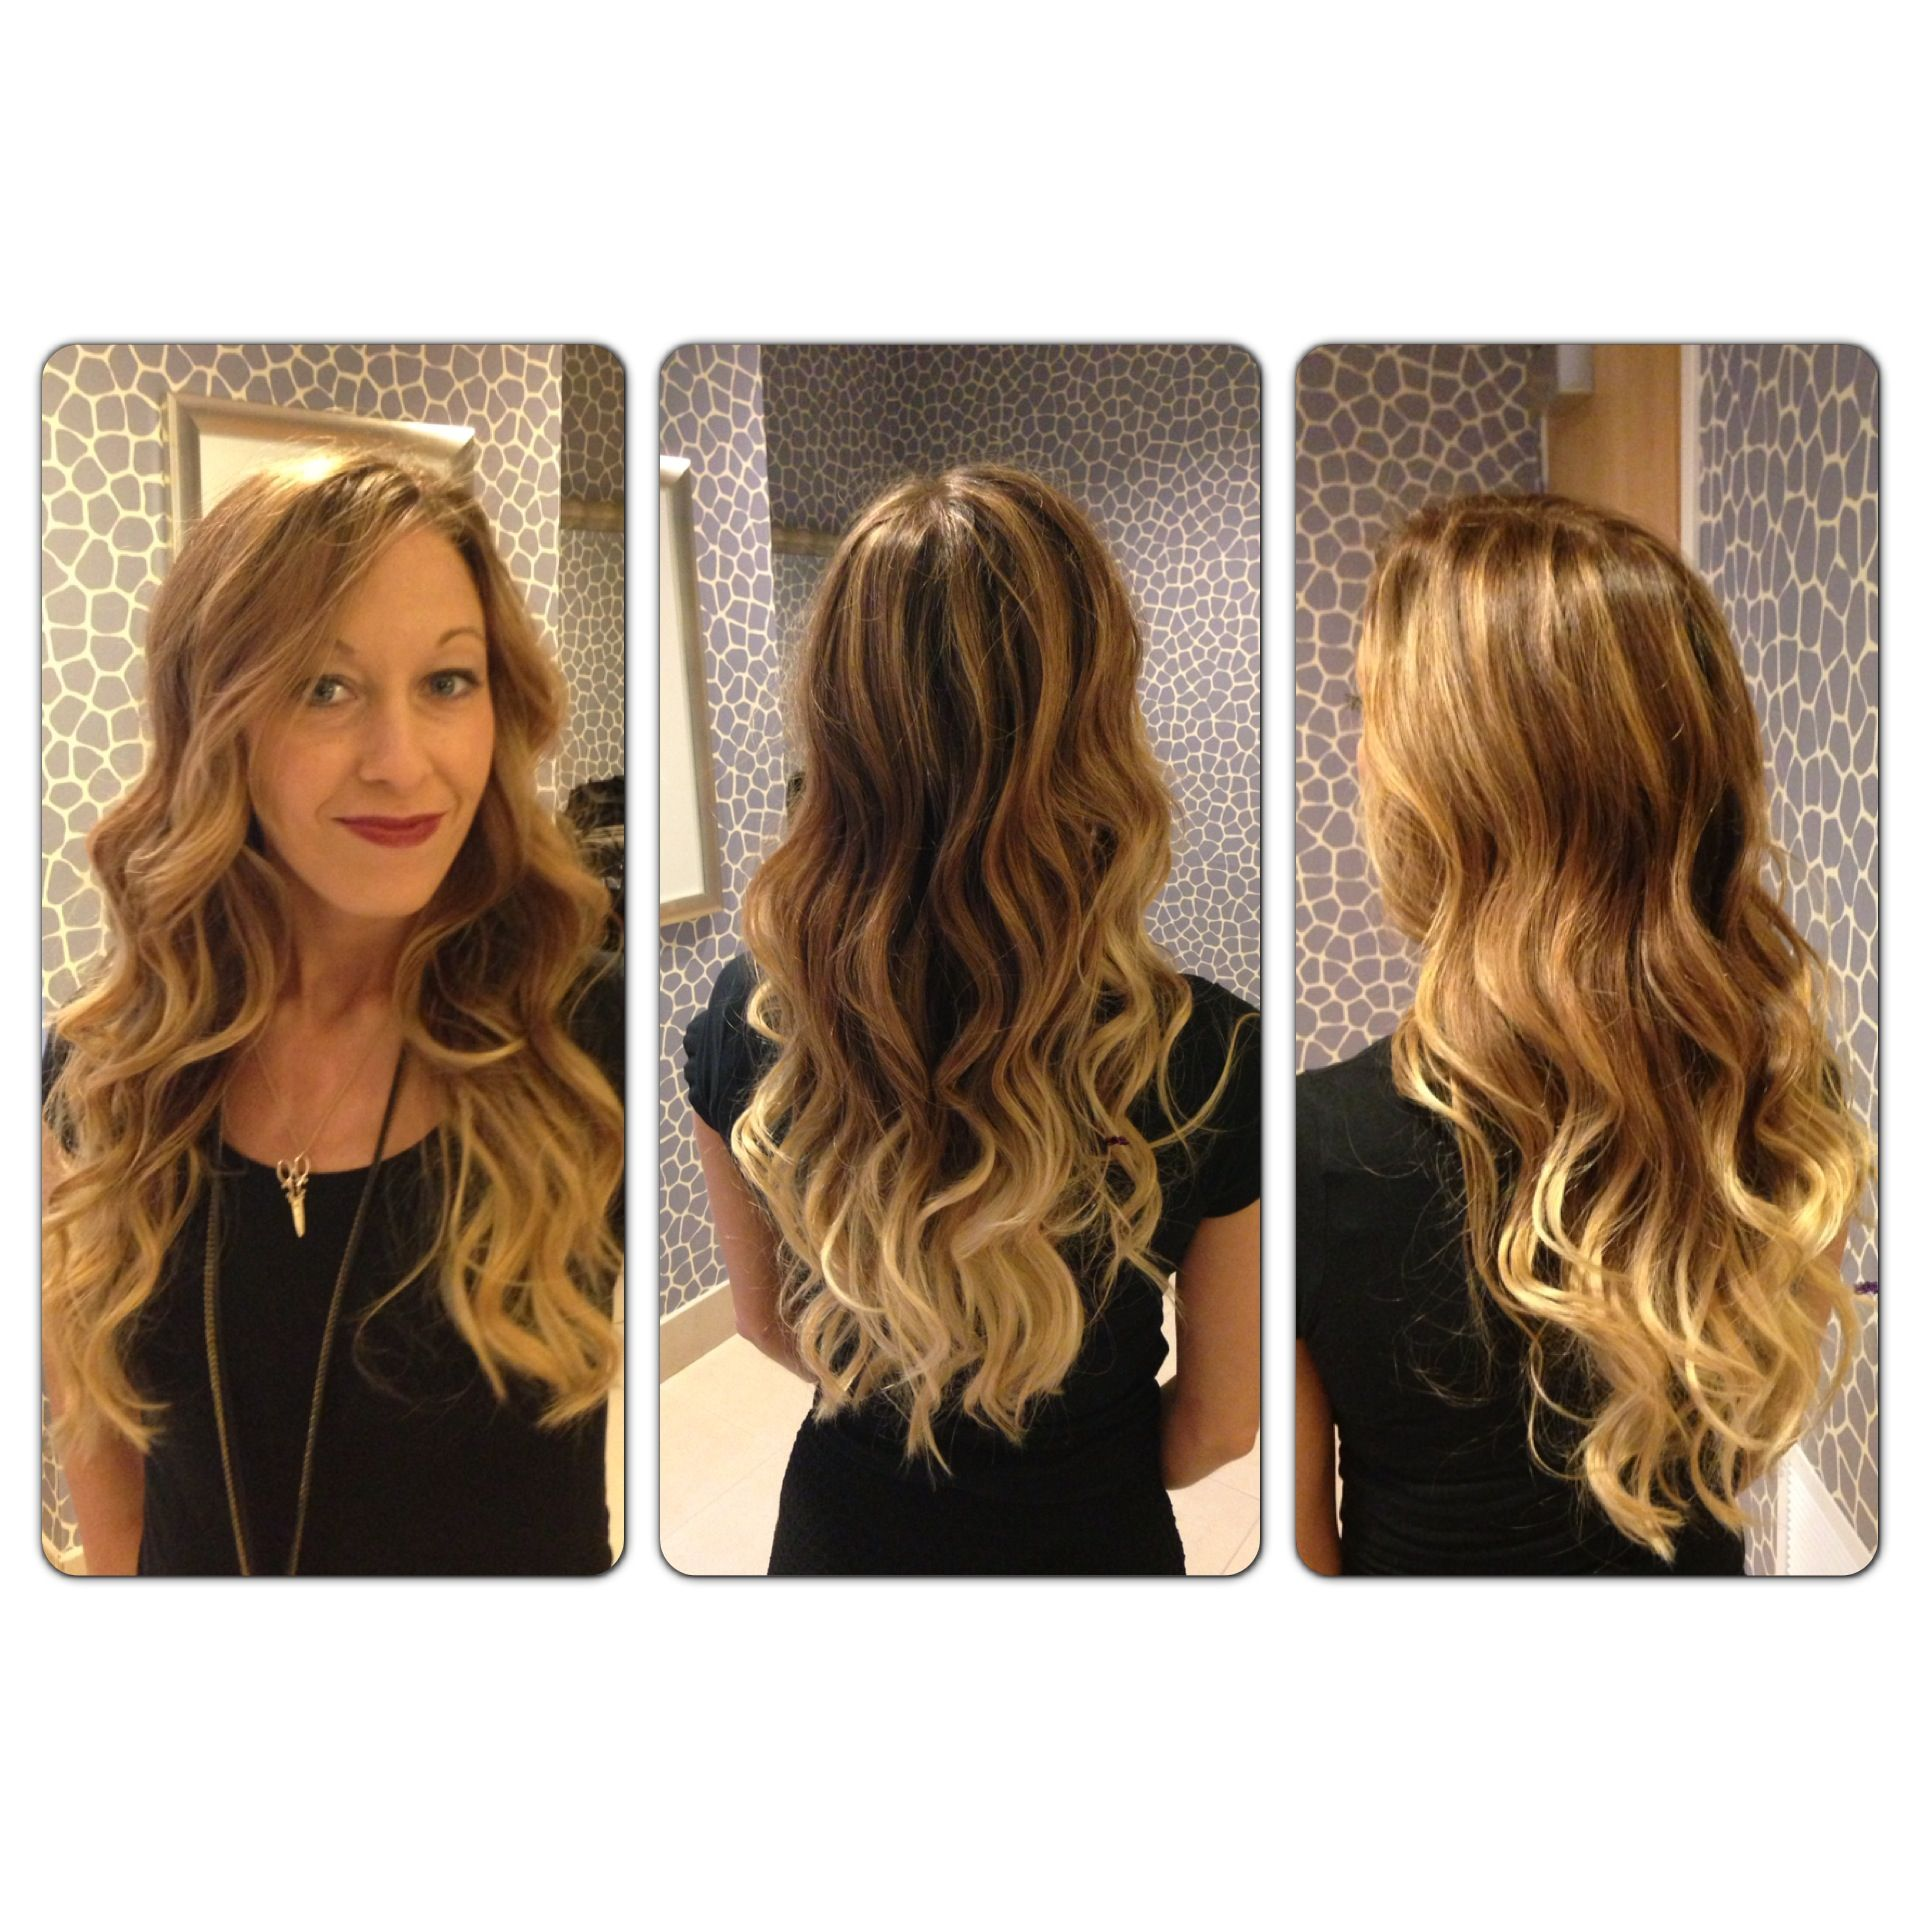 Balayage ombré highlights L Oreal colorist Corene Hess at Capello